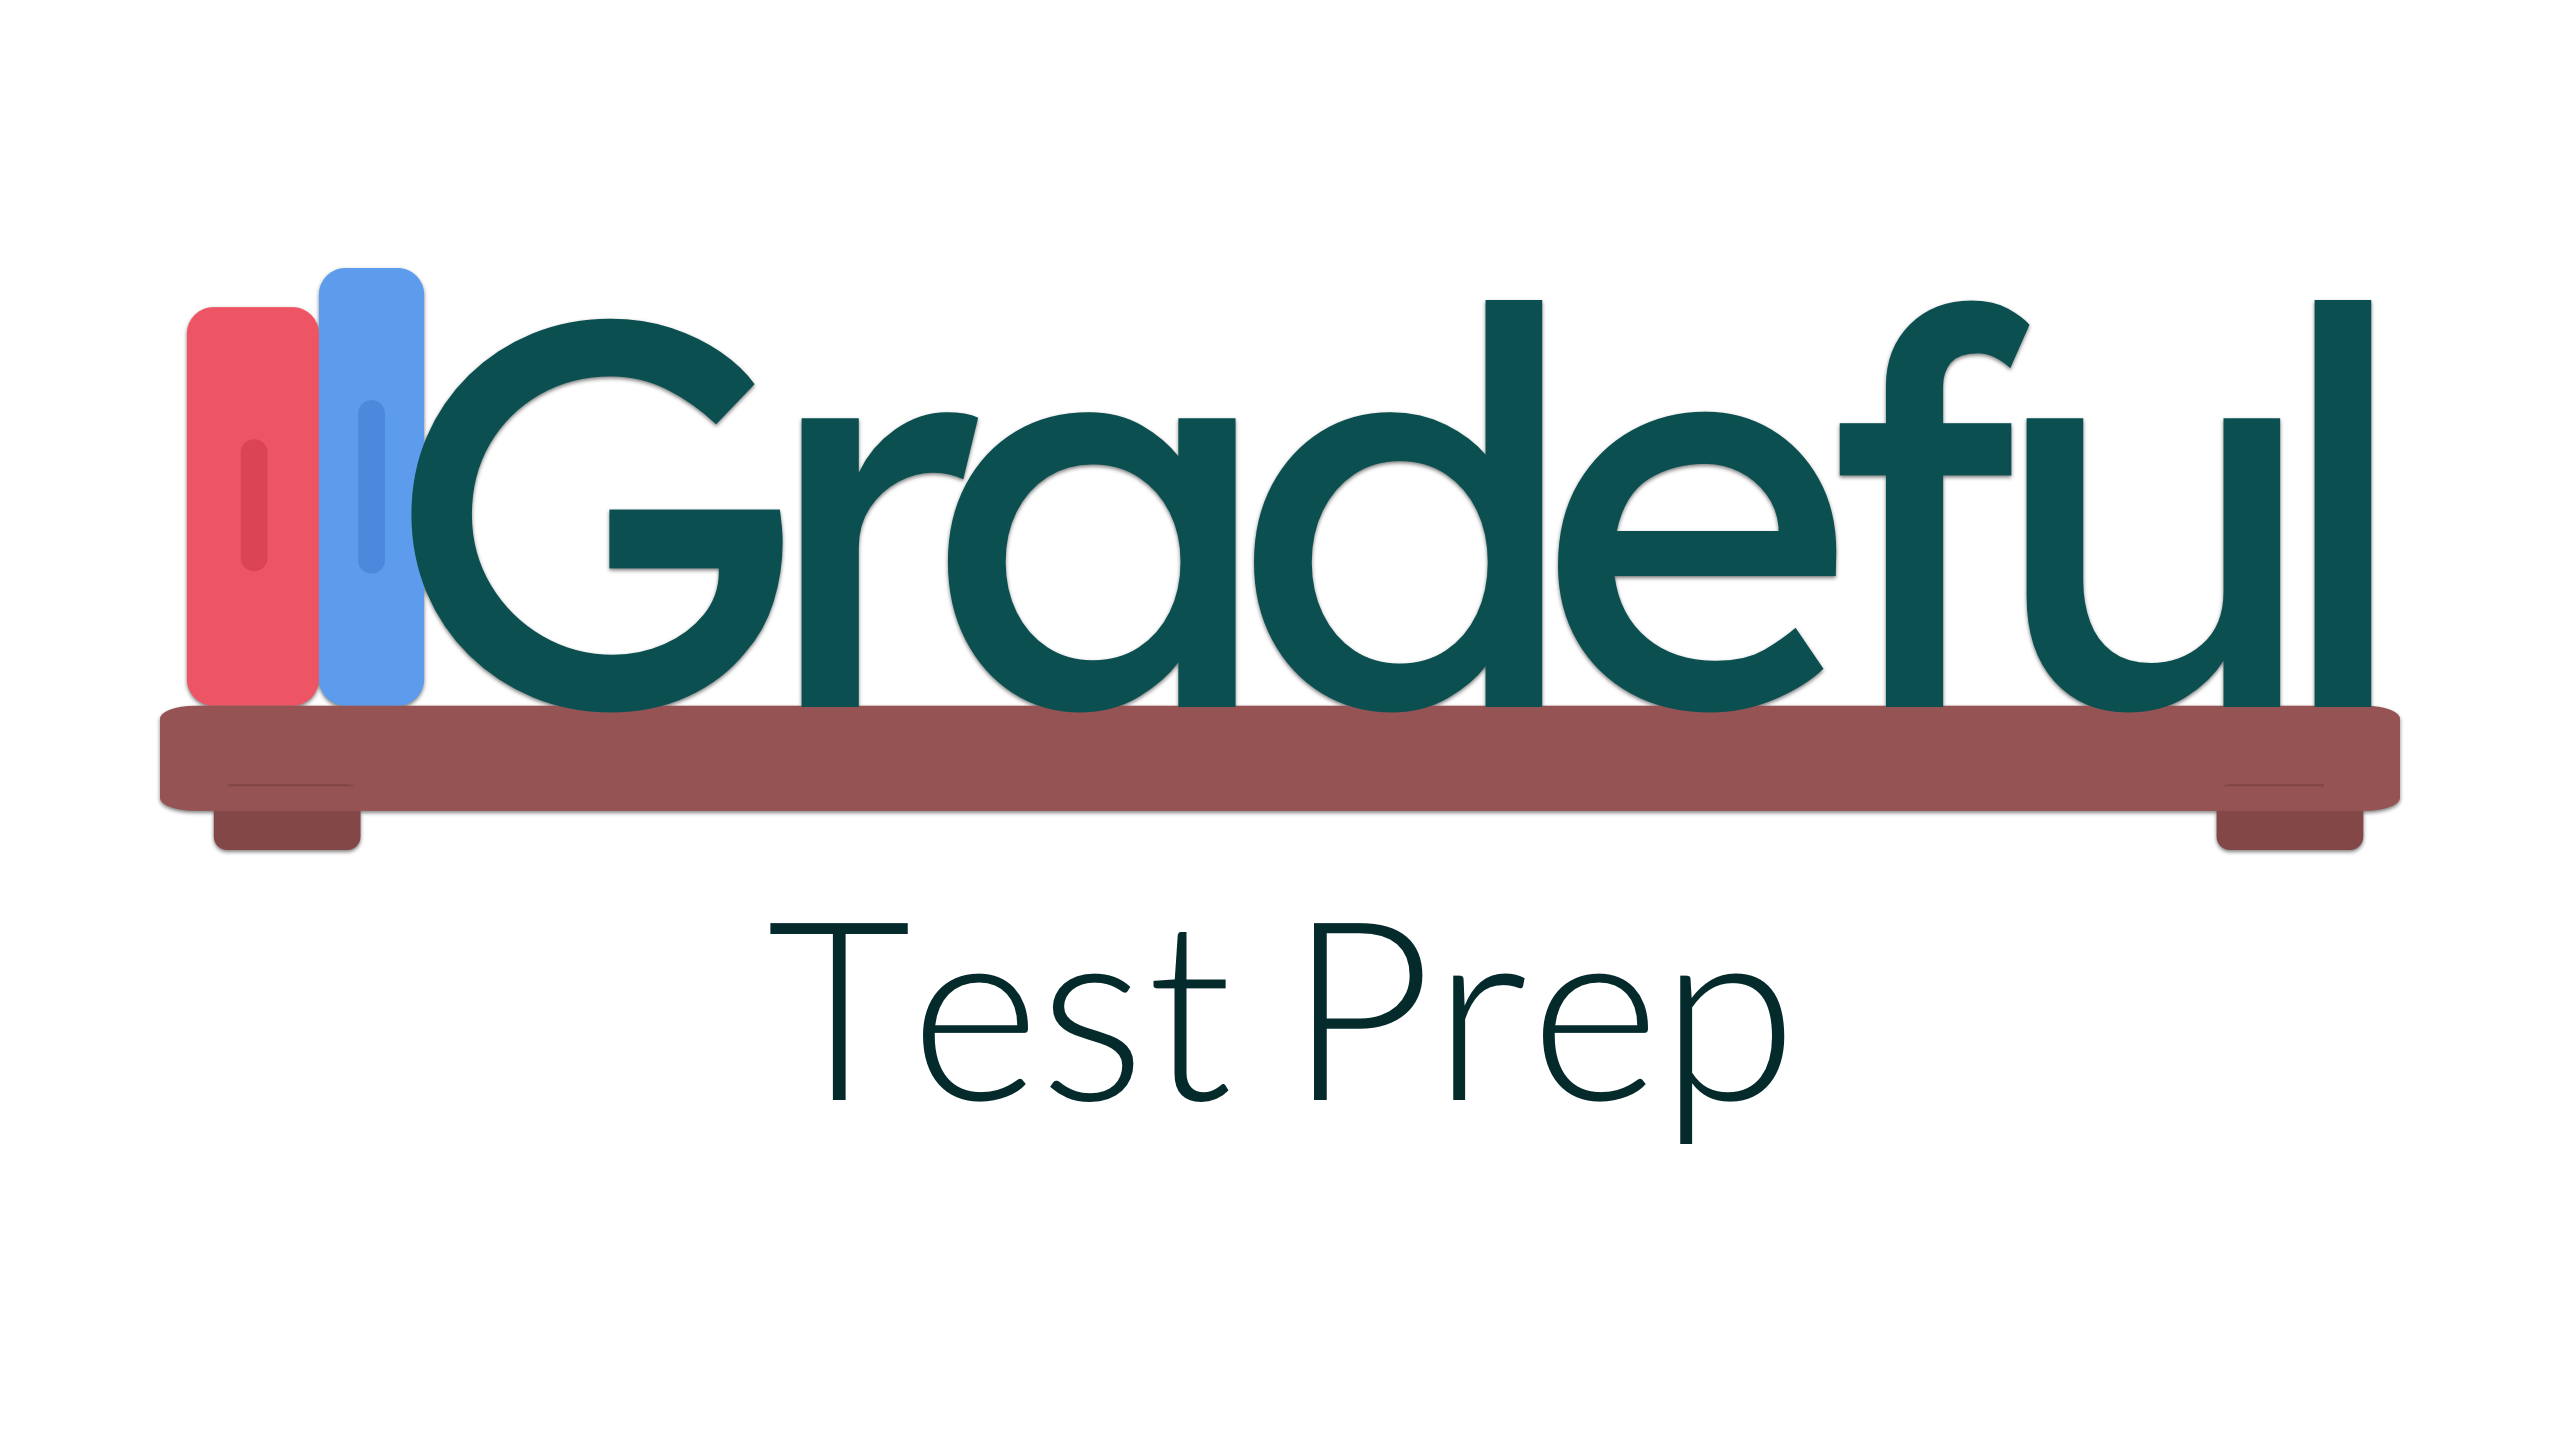 For Effective Test Prep